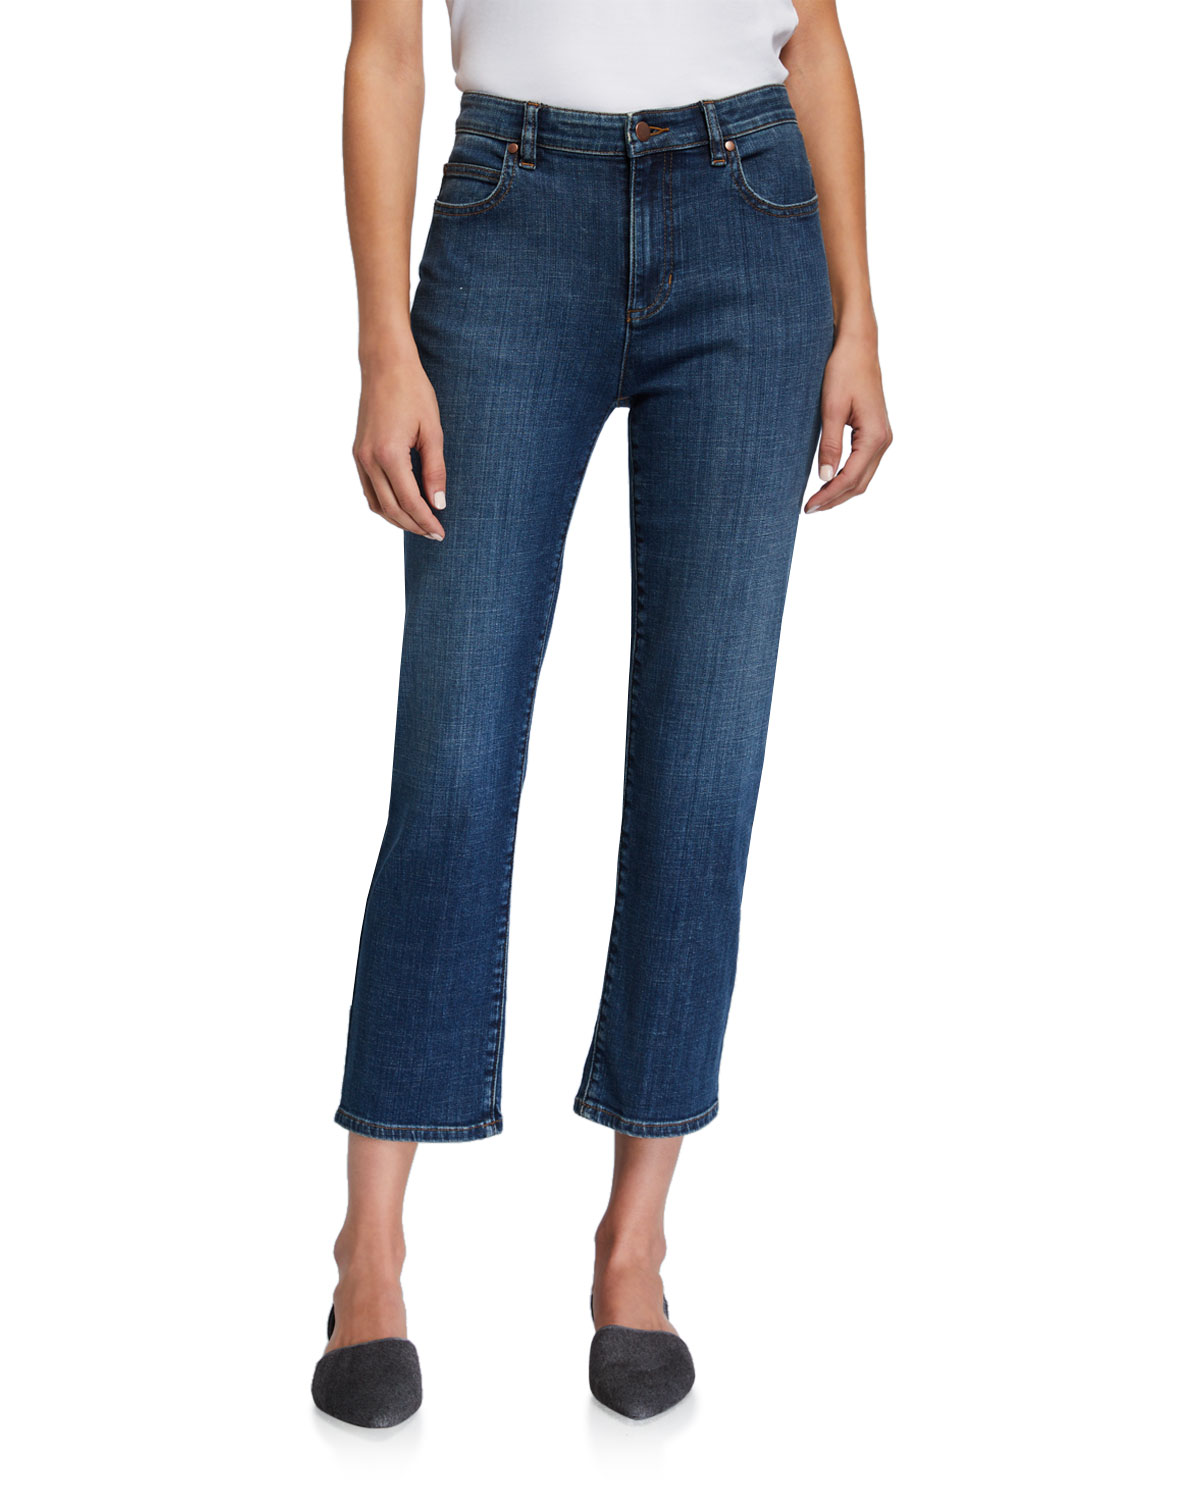 Eileen Fisher Jeans PETITE ORGANIC COTTON HIGH-WAIST STRAIGHT-LEG CROPPED JEANS